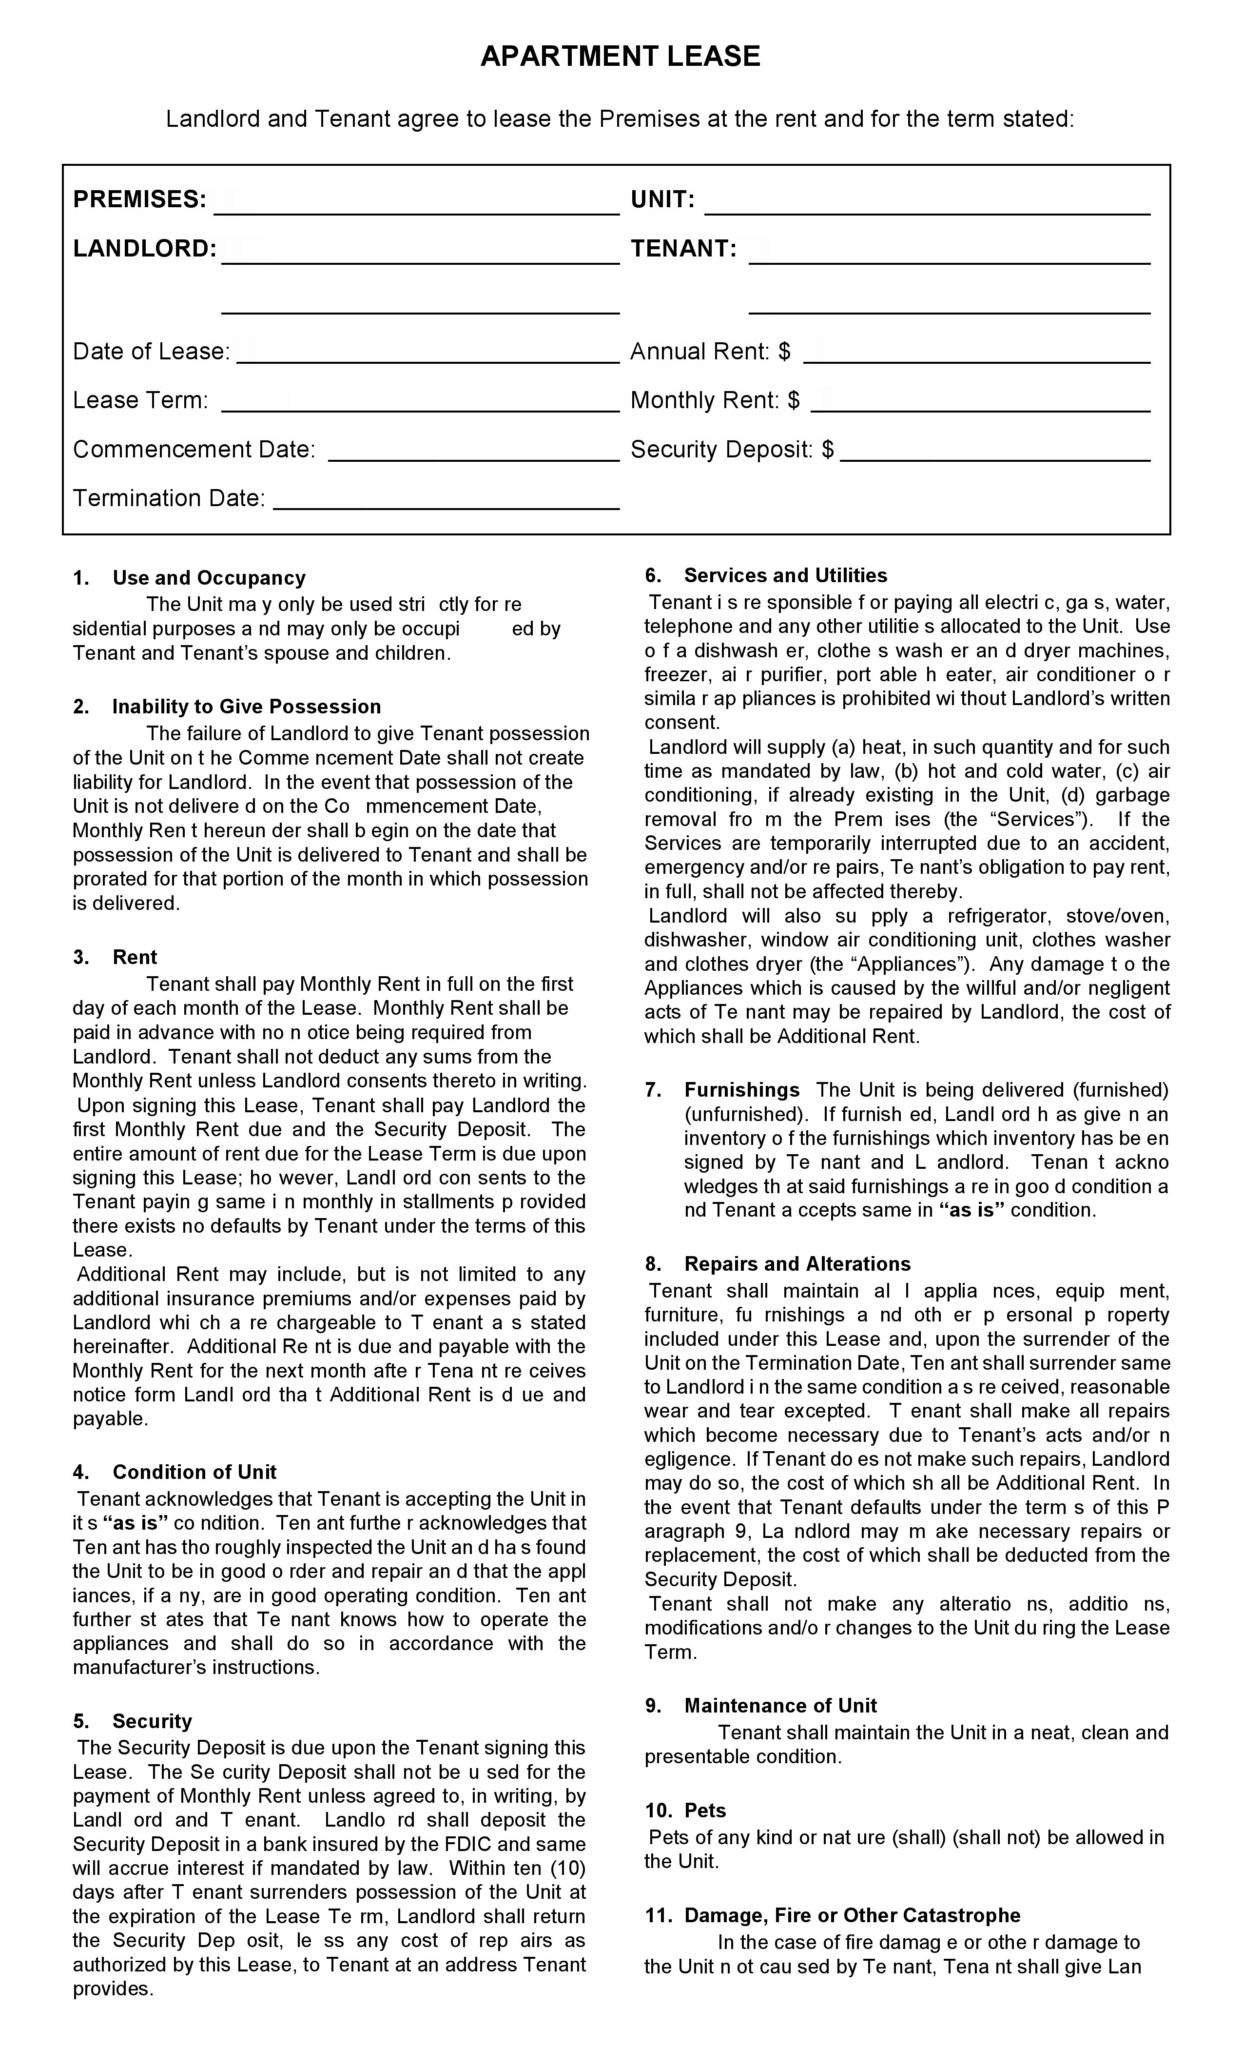 Free Printable Apartment Lease Agreement - Printable Agreements - Apartment Lease Agreement Free Printable